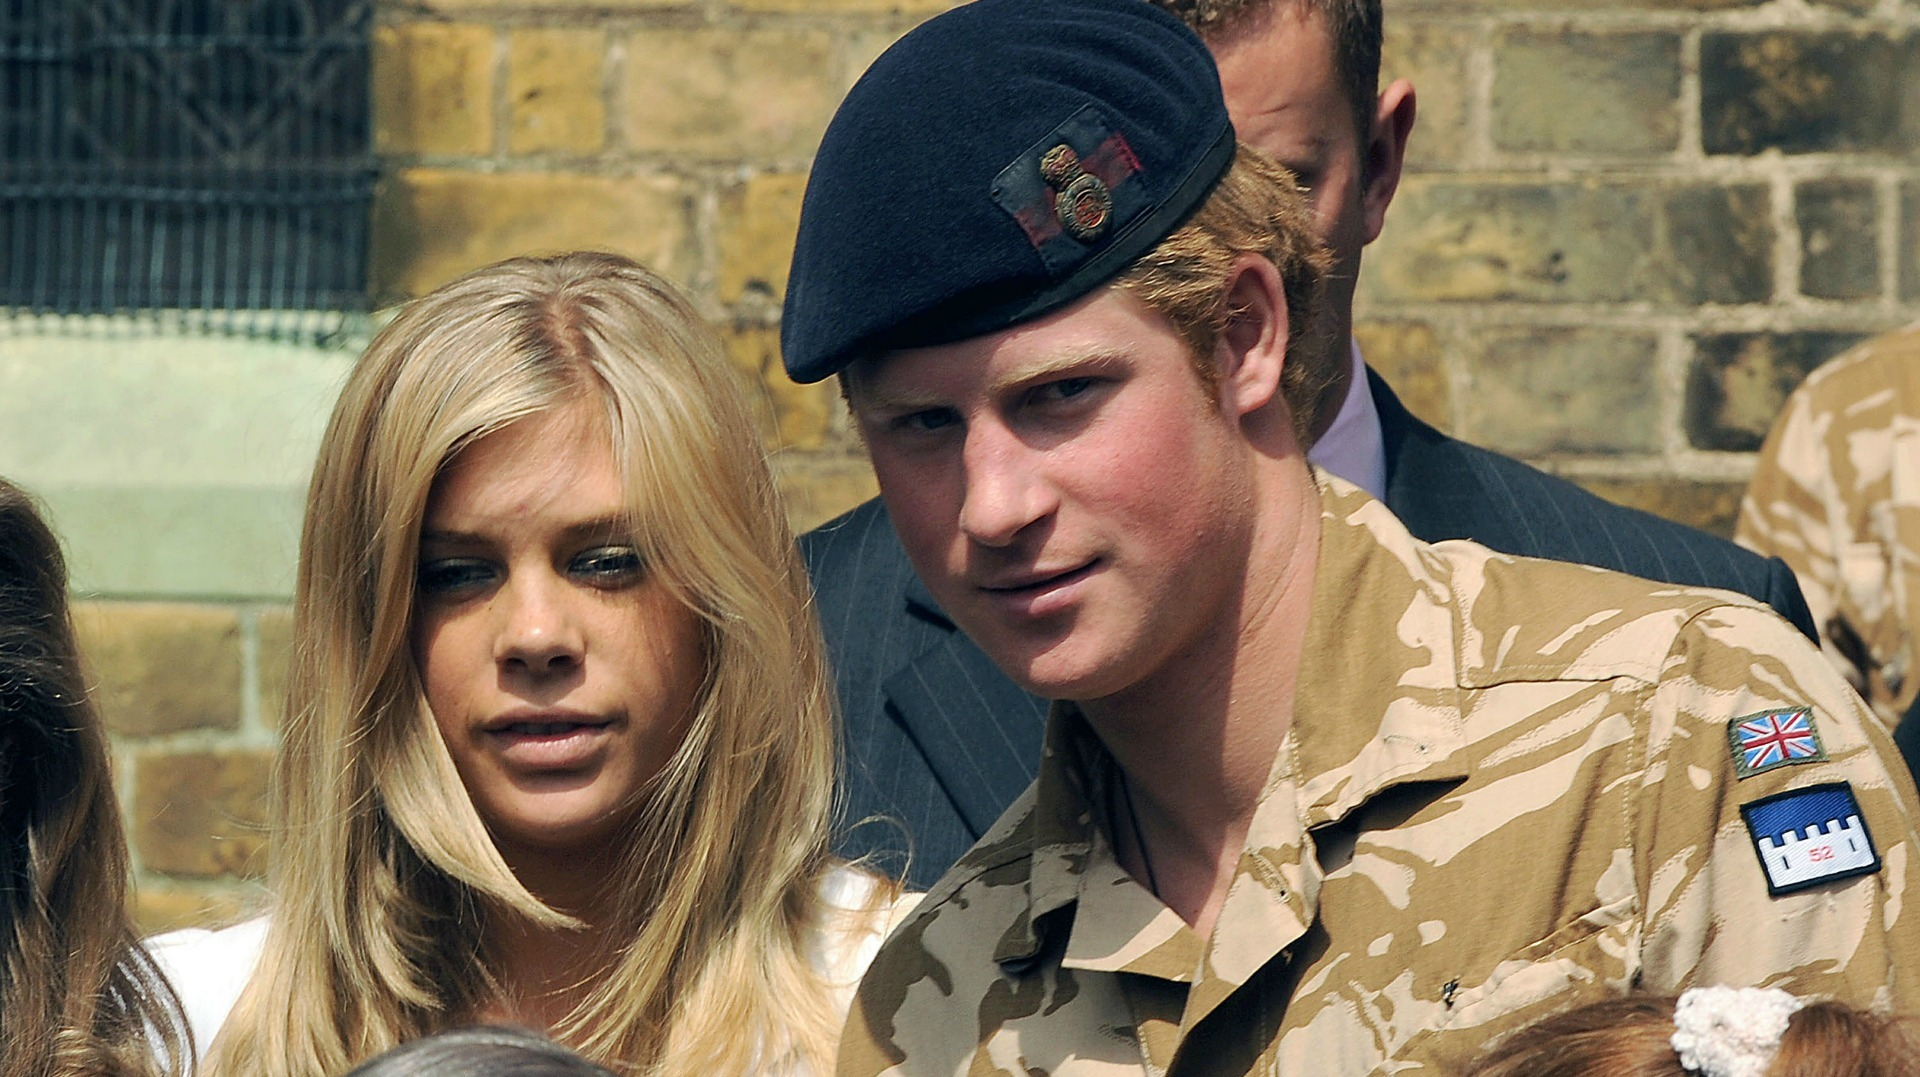 Prince Harry's New Girlfriend And The Old Ones